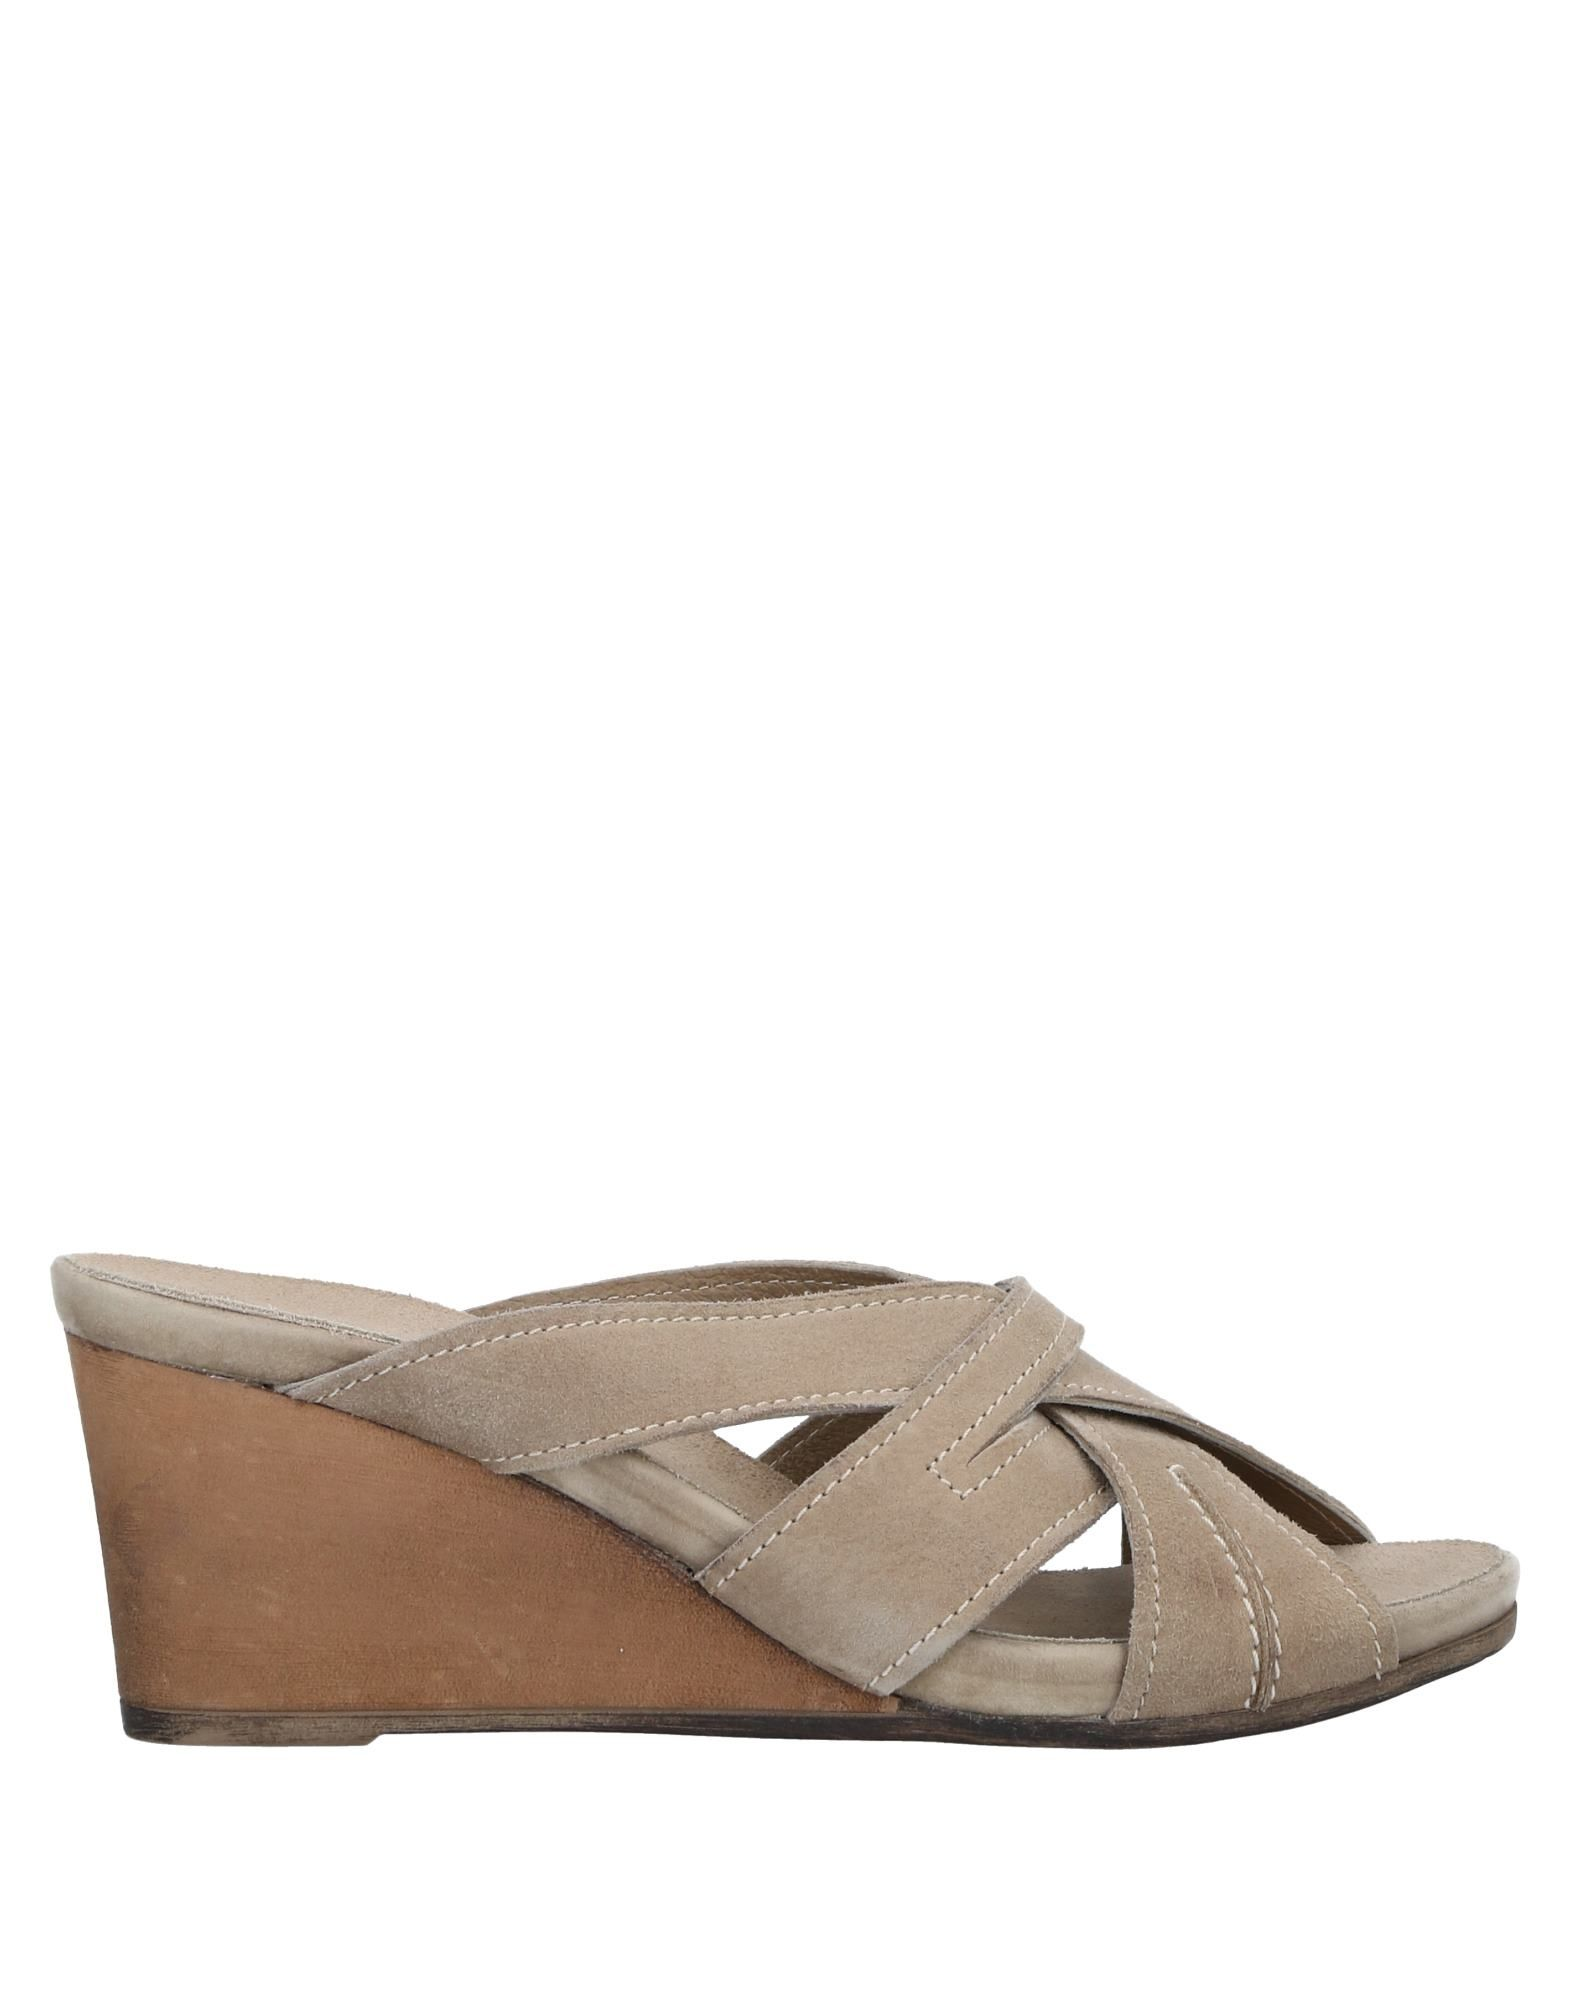 Manas Sandals - on Women Manas Sandals online on -  Canada - 11501943WA d73e48